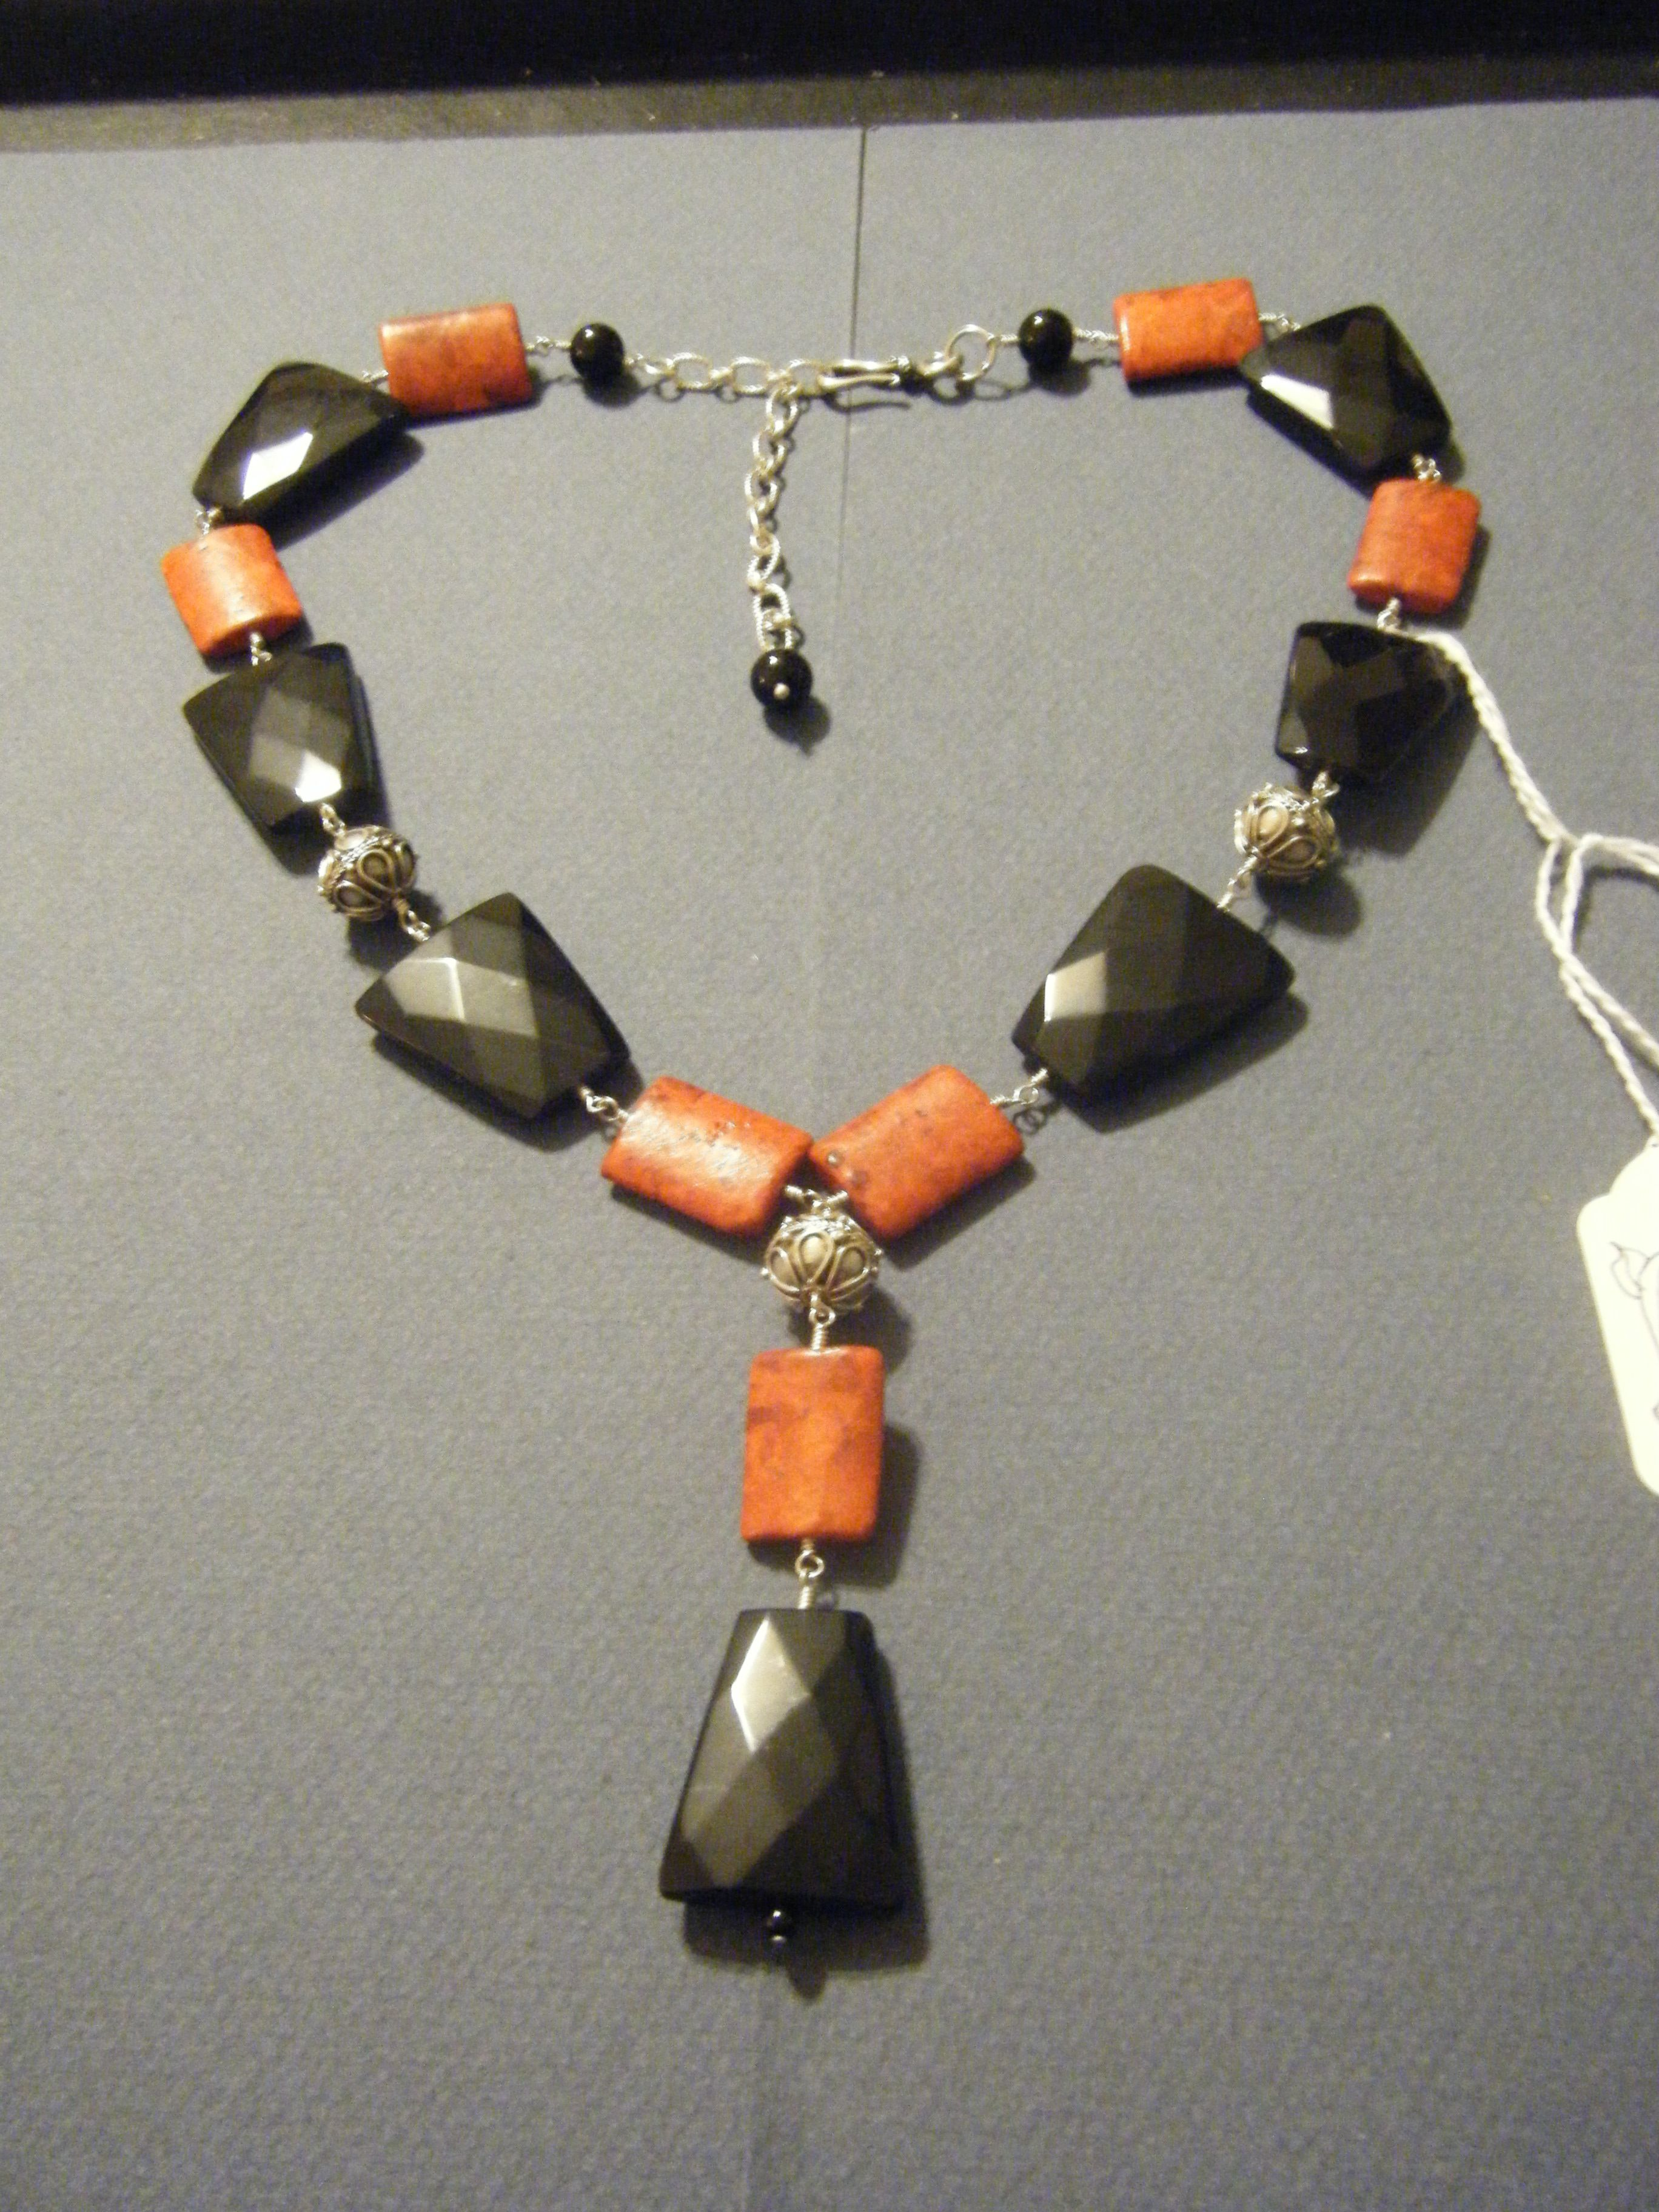 Black onyx and Sponge coral wirewrapped with Sterling Silver wire and accents